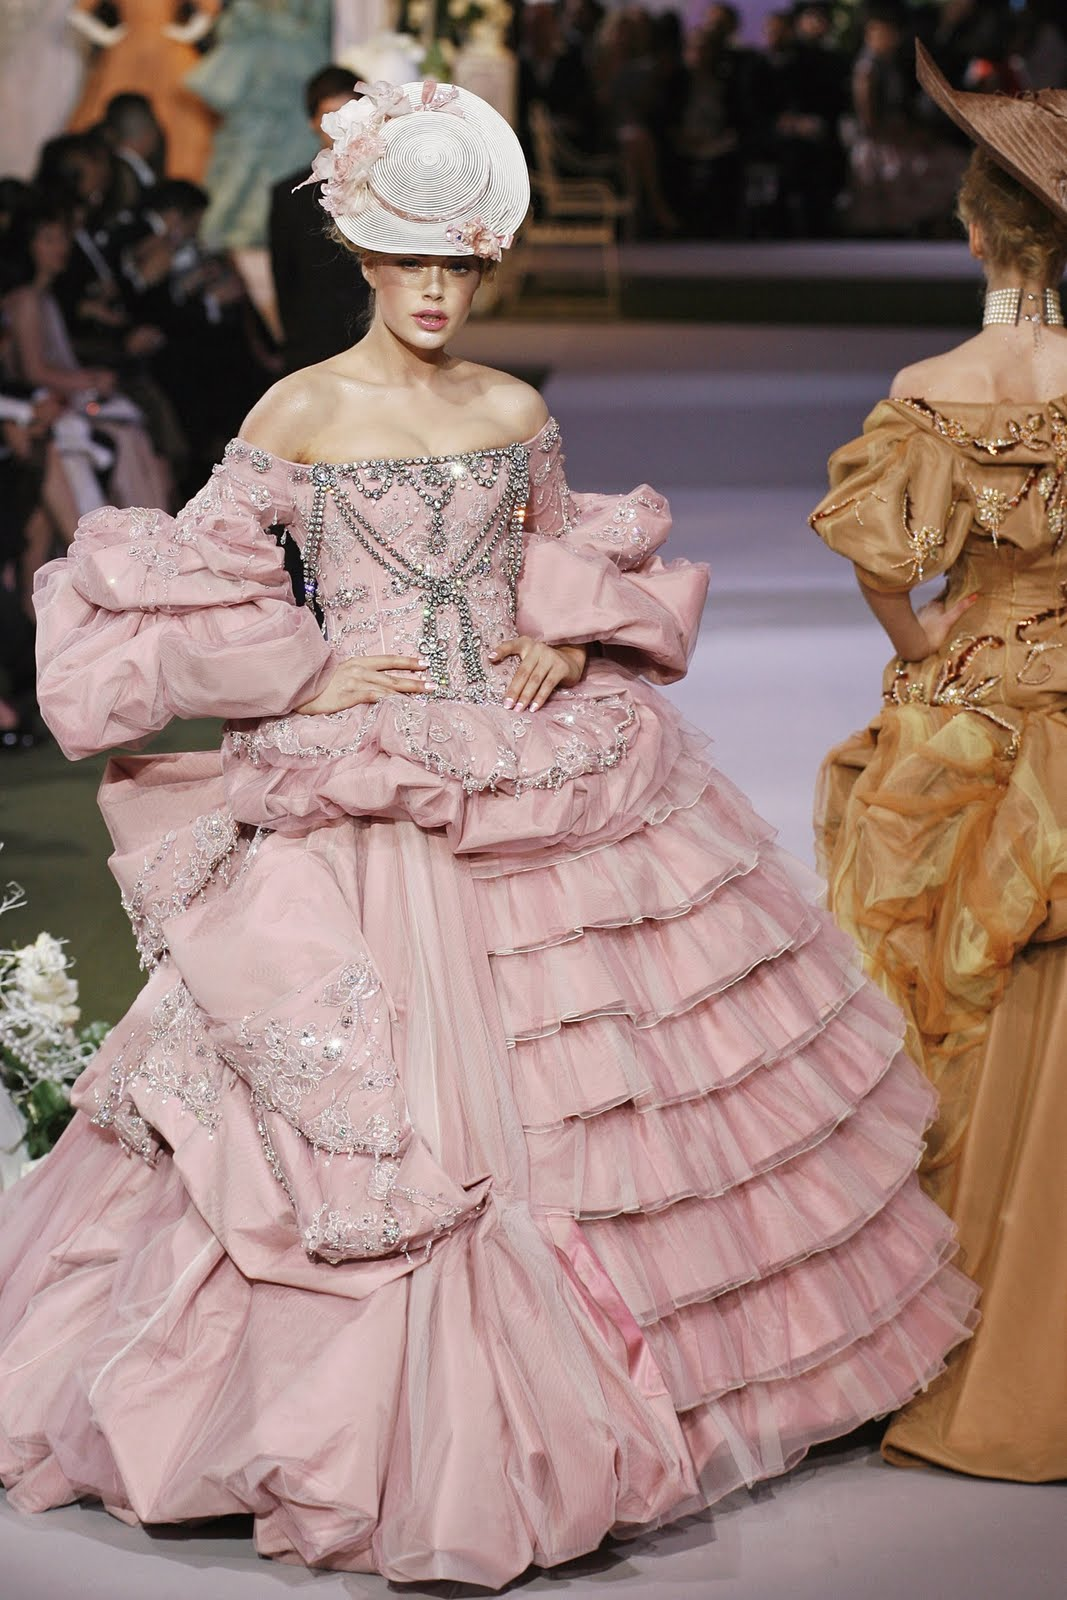 Marie antoinette meets vivienne westwood the 18th century for Modern haute couture